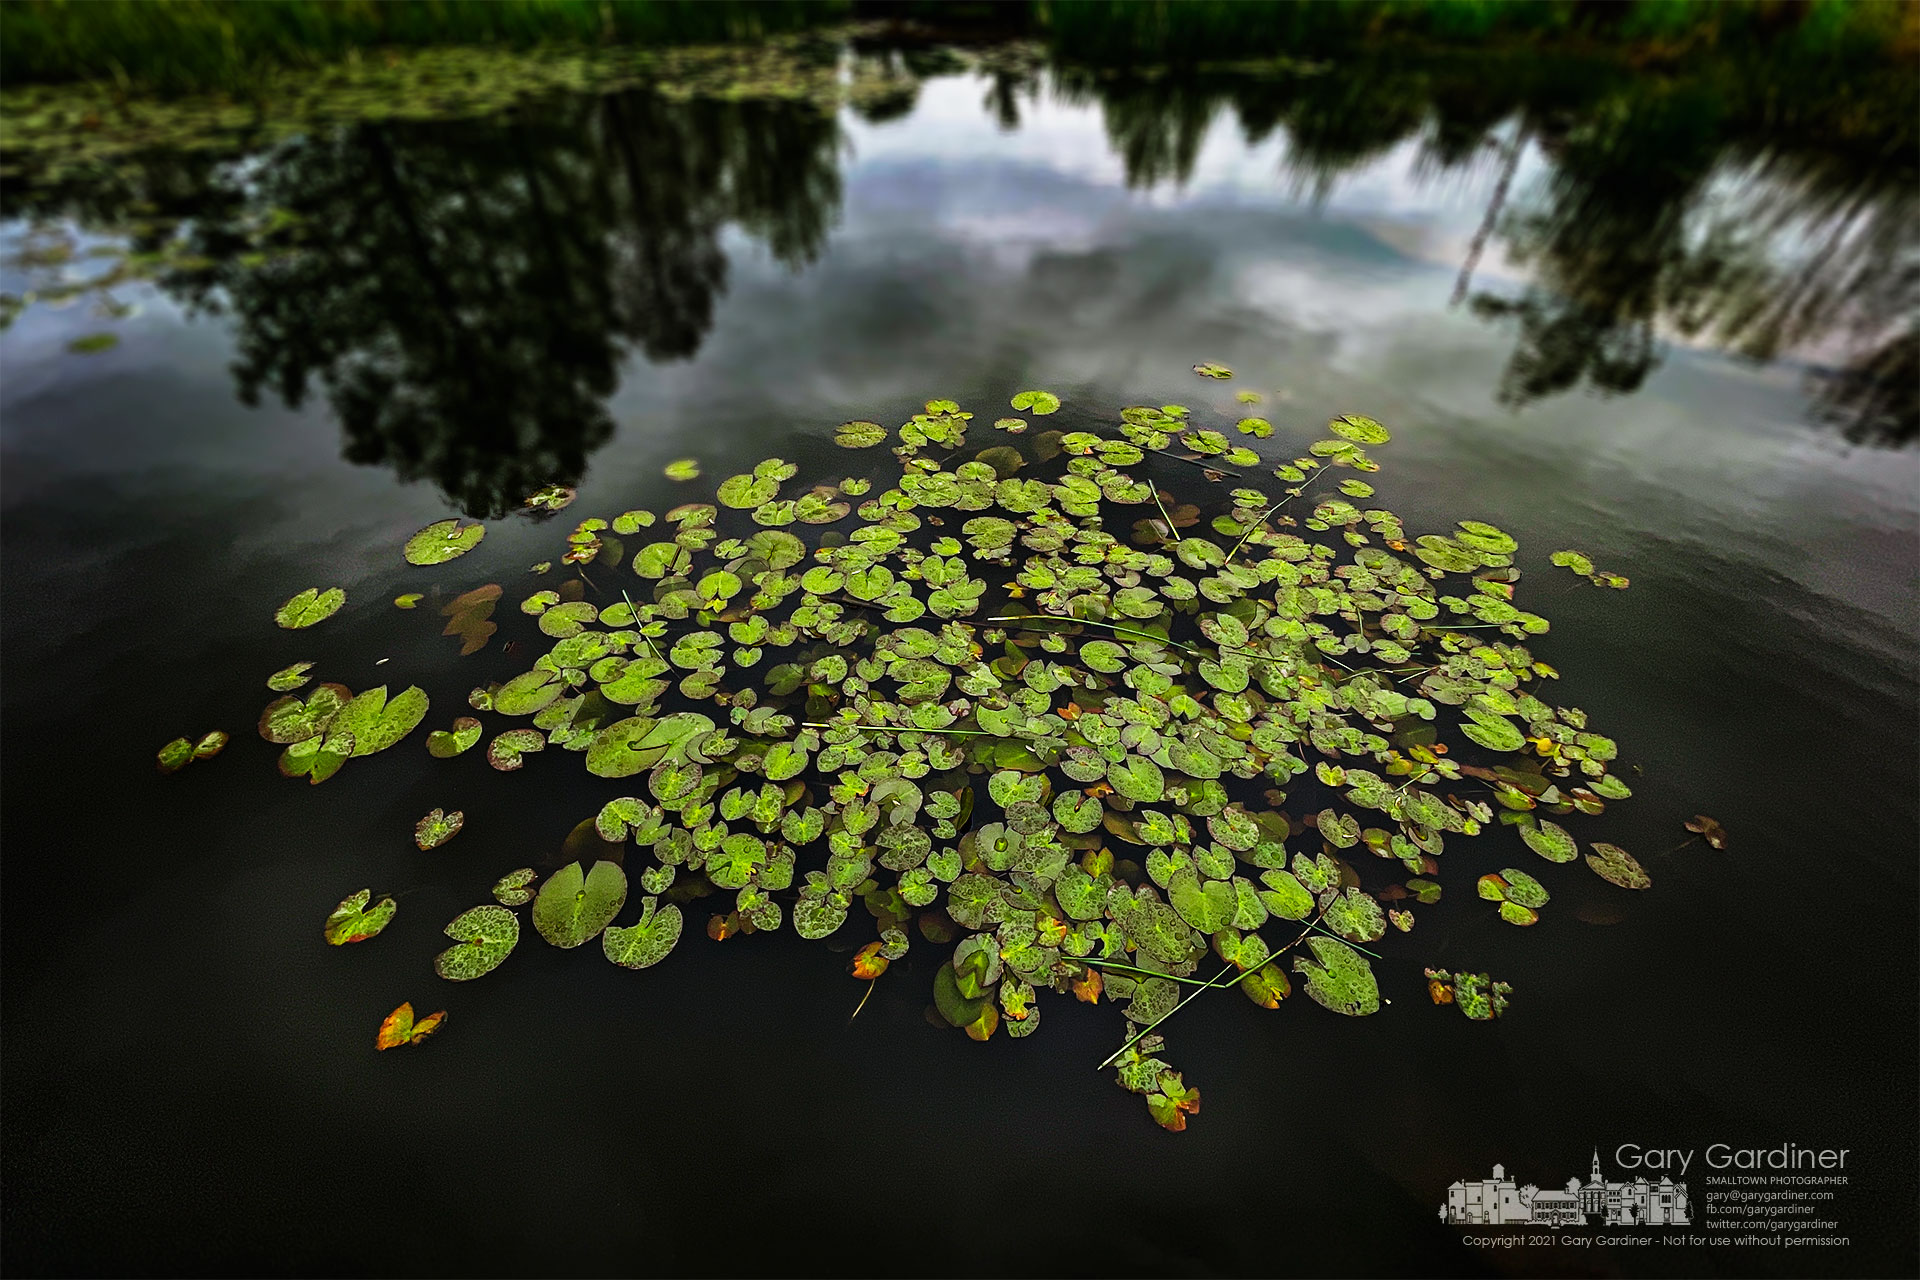 The early growth of lily pads on the wetlands at Highlands Aquatic Center wears a coating of raindrops after an overnight and morning rain. My Final Photo for May 3, 2021.